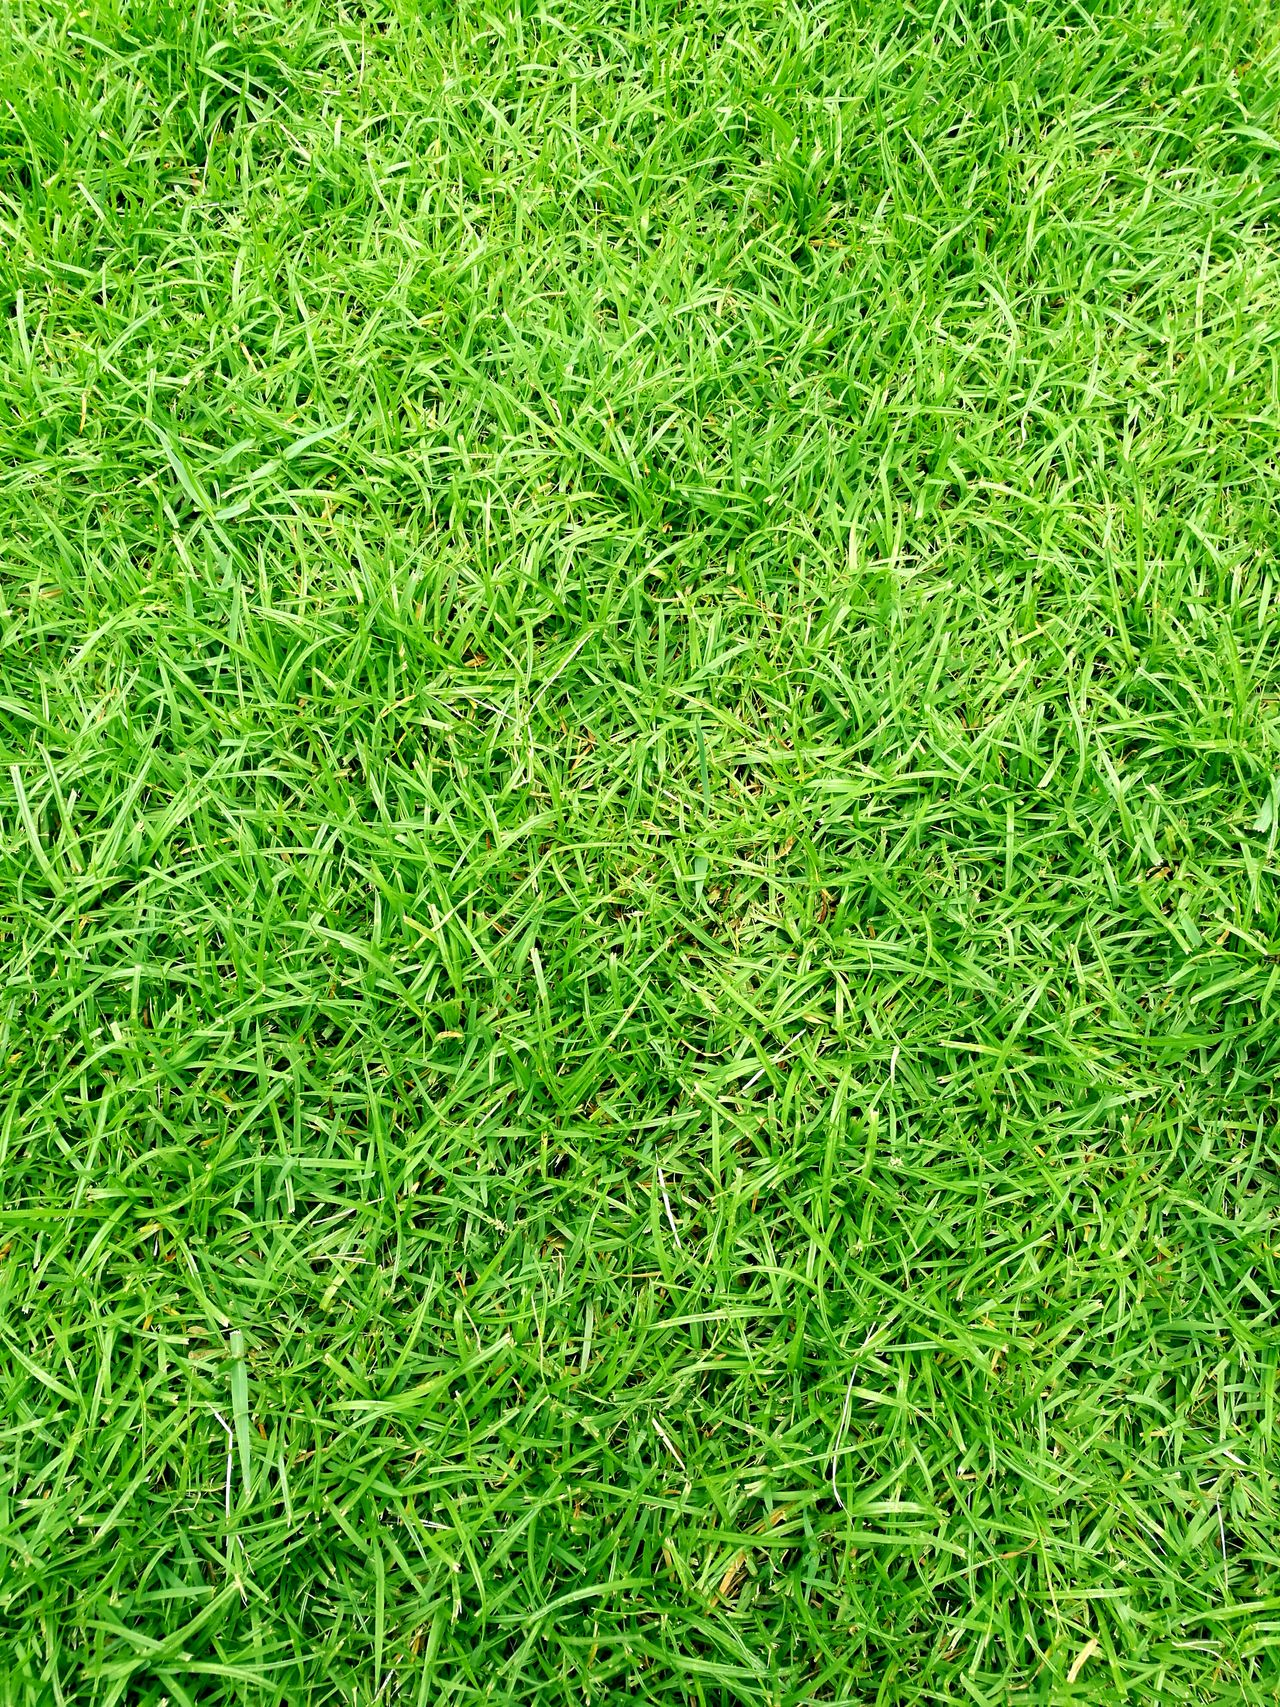 Green grass background. Green Grass Grass Grass Area Grass Photography Grass Field Grass Background Grass For Ground Relaxing Relaxing Time Nature Photography Naturephotography Nature_collection